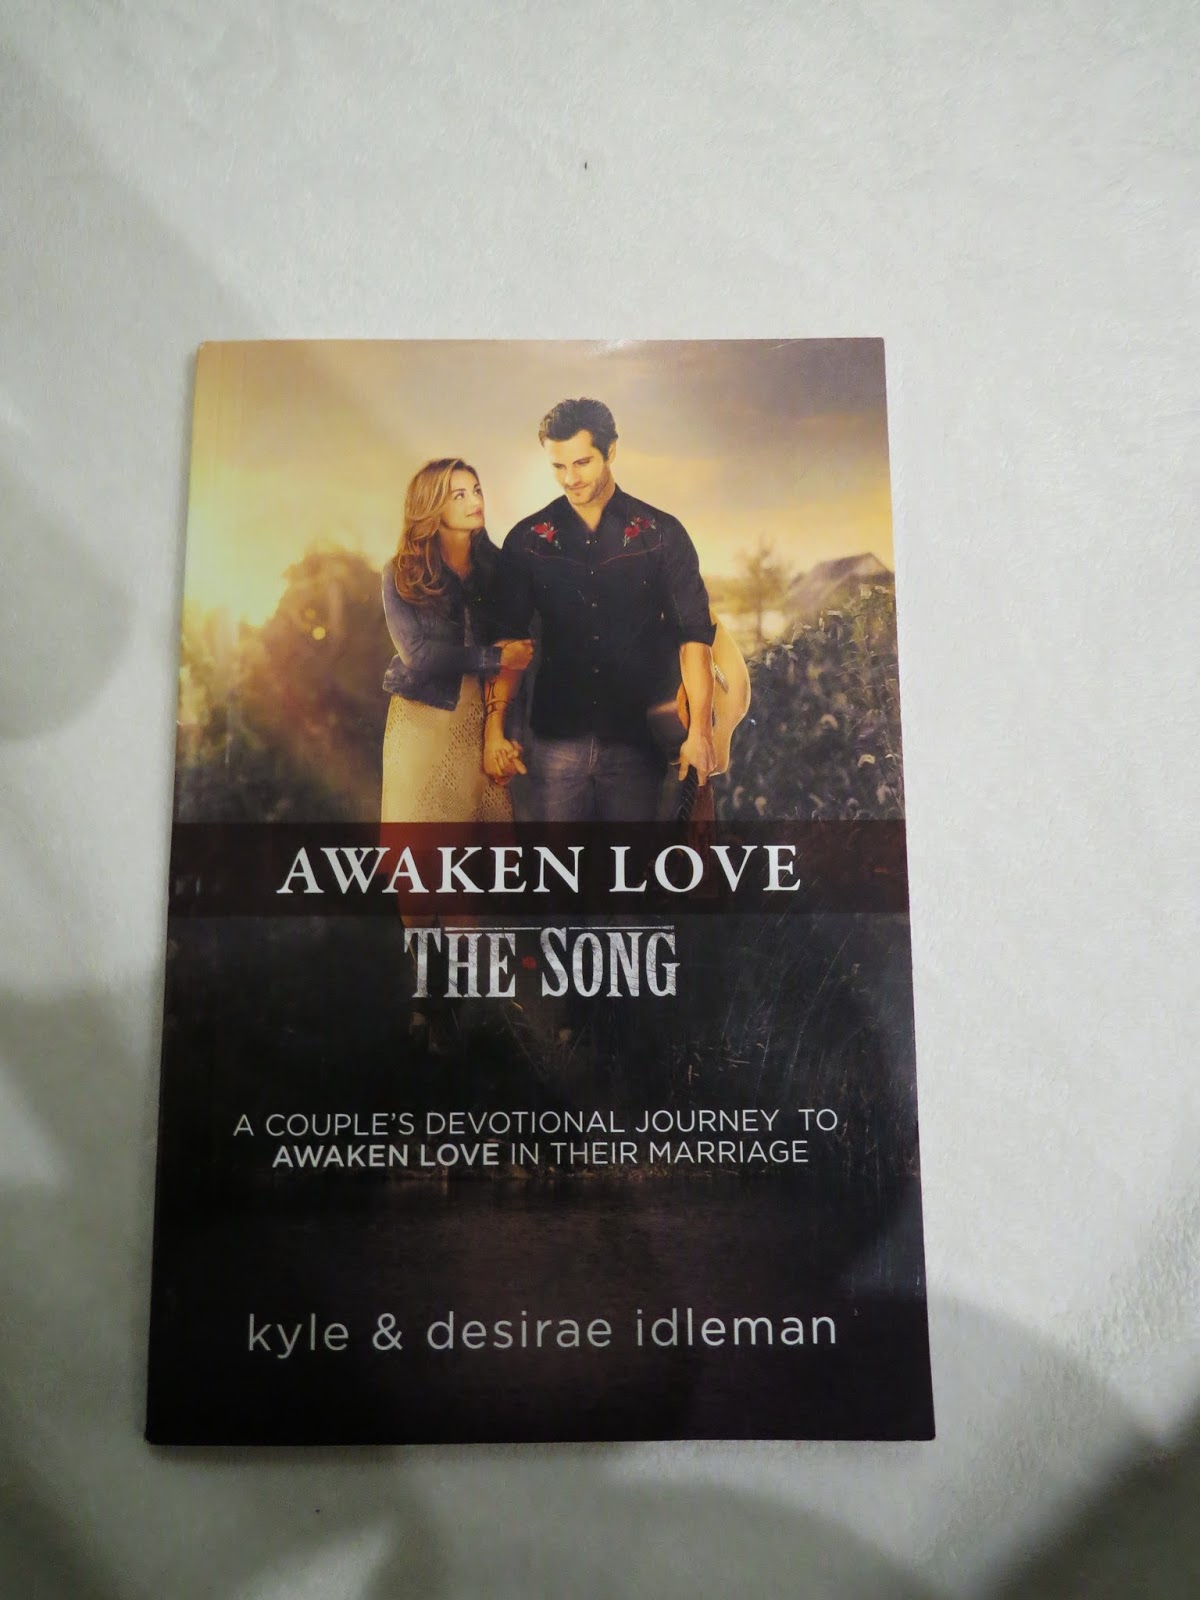 http://dealsandfree.blogspot.ca/2014/12/stay-strong-with-song-awaken-love.html